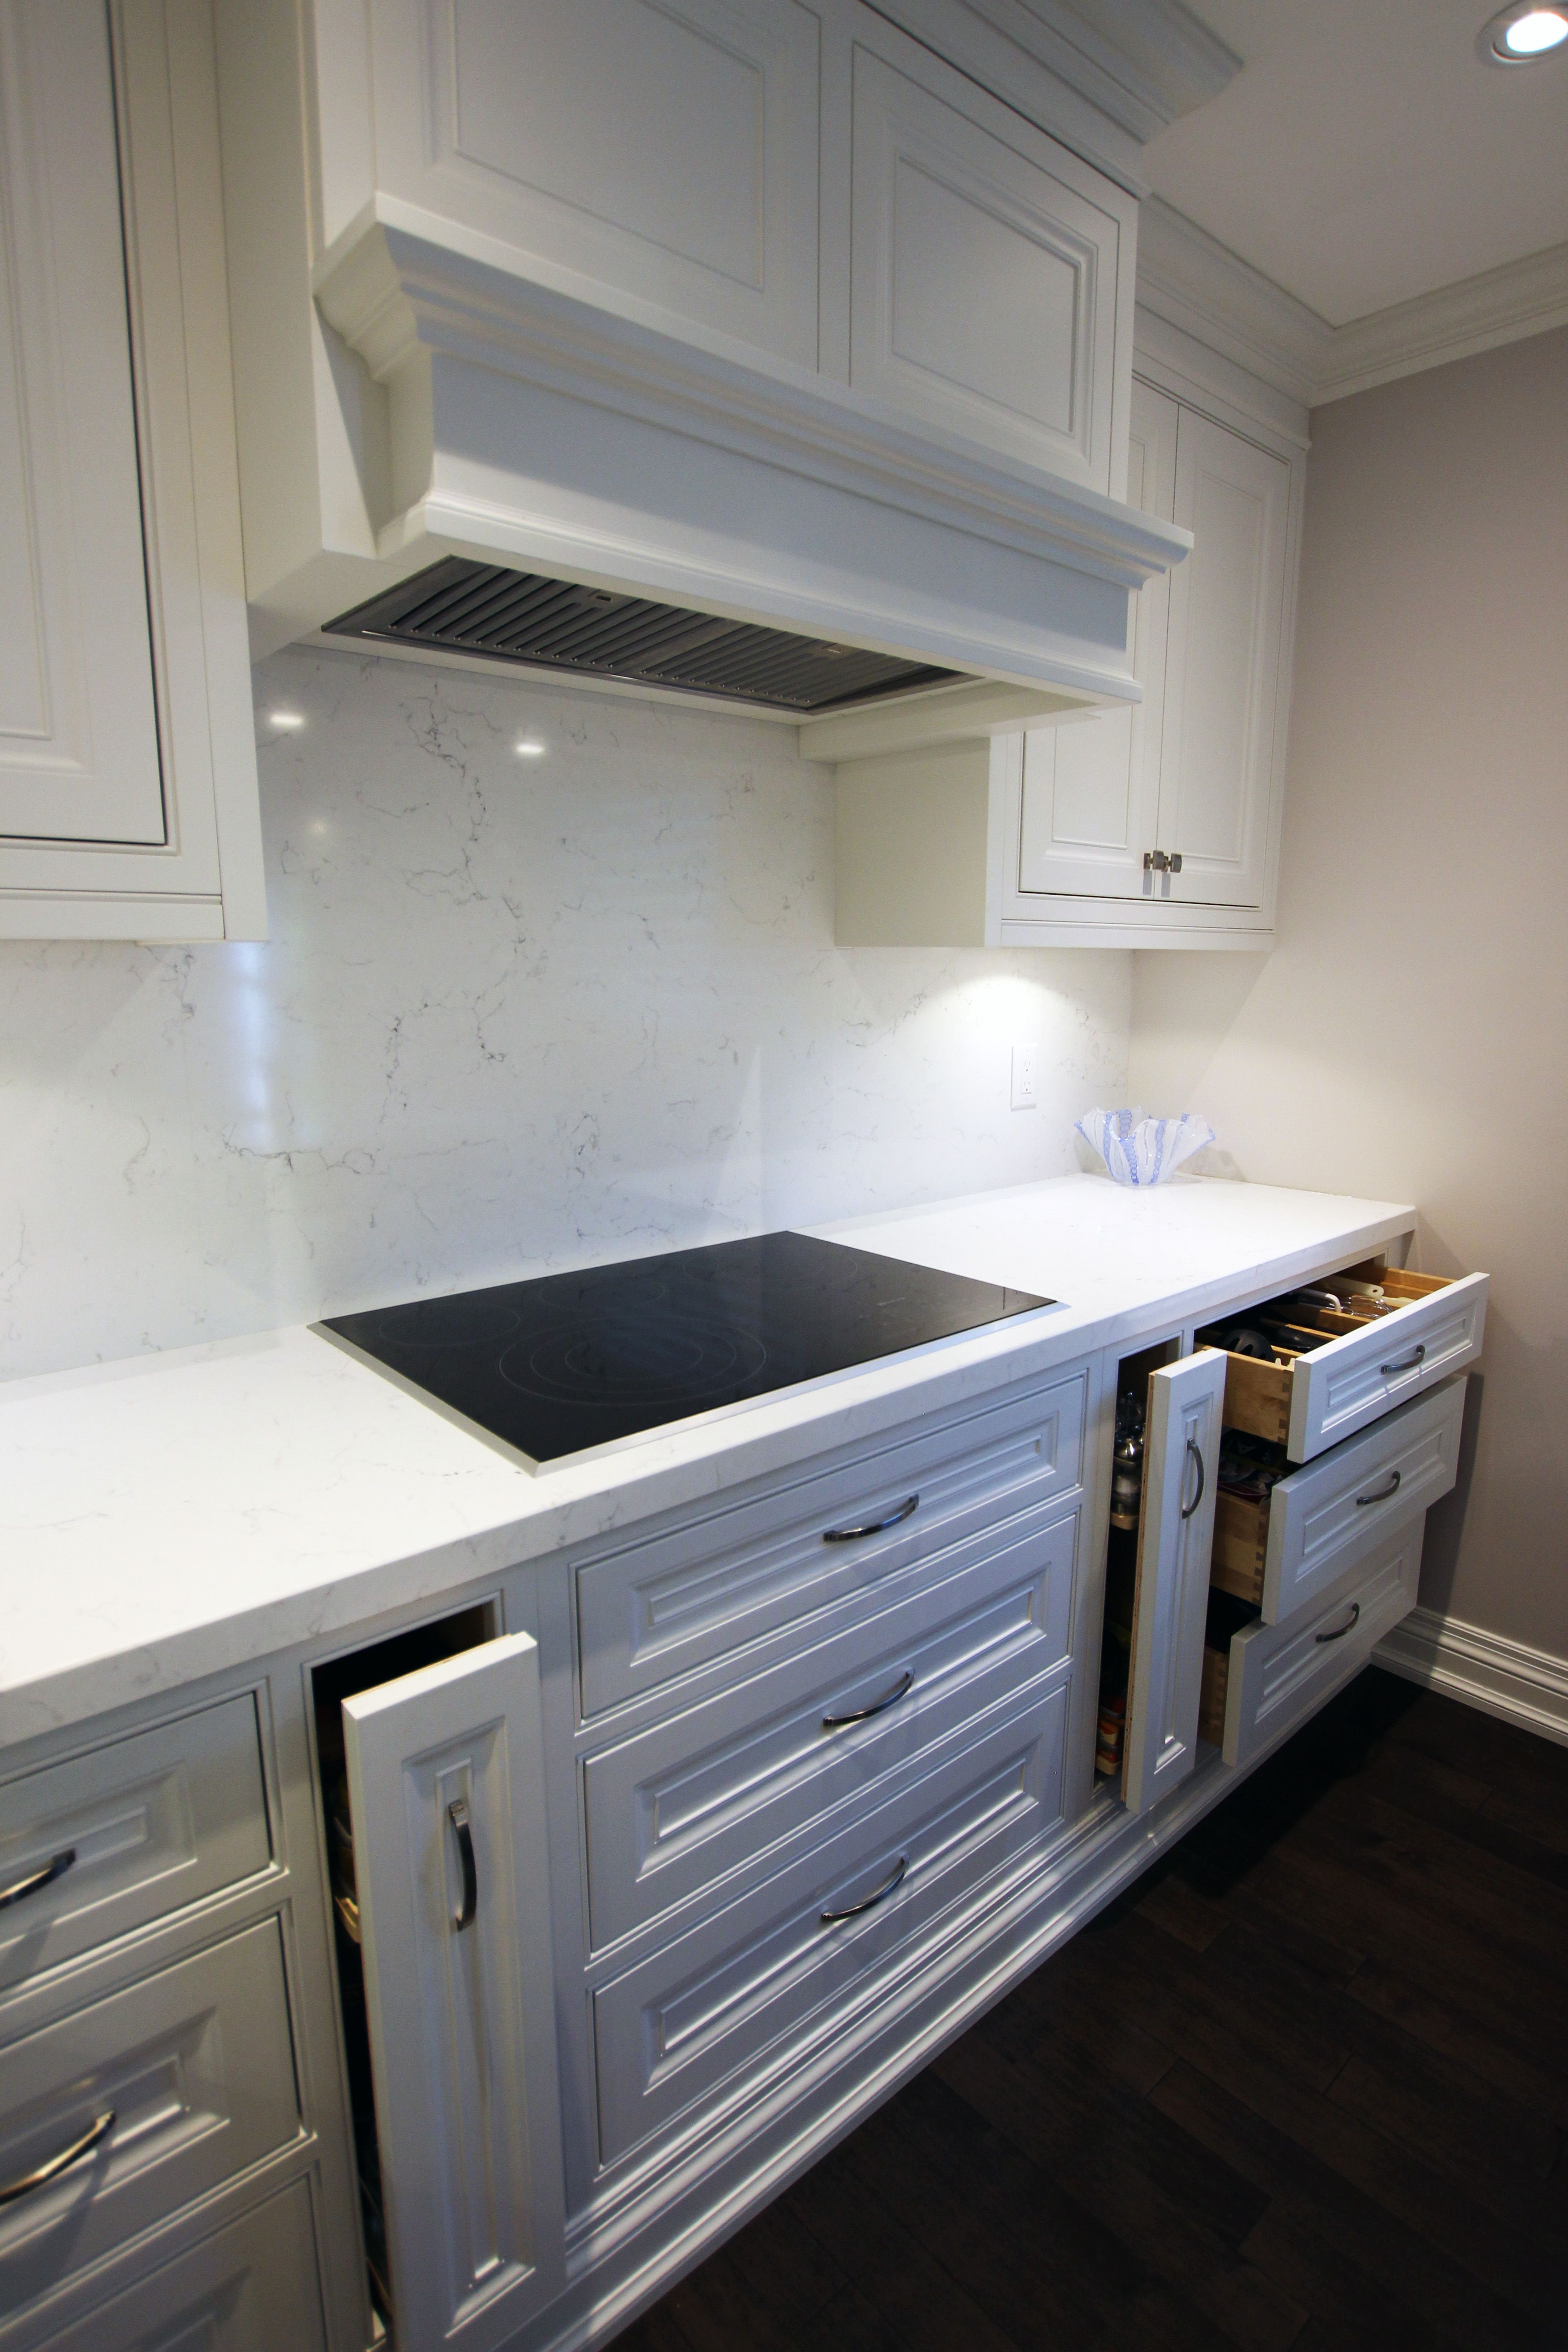 Custom Made Solid Wood Painted Kitchen Cabinets Solid Maple Dovetail Drawers And Soft Close Hi White Glazed Cabinets White Kitchen Quartz White Modern Kitchen